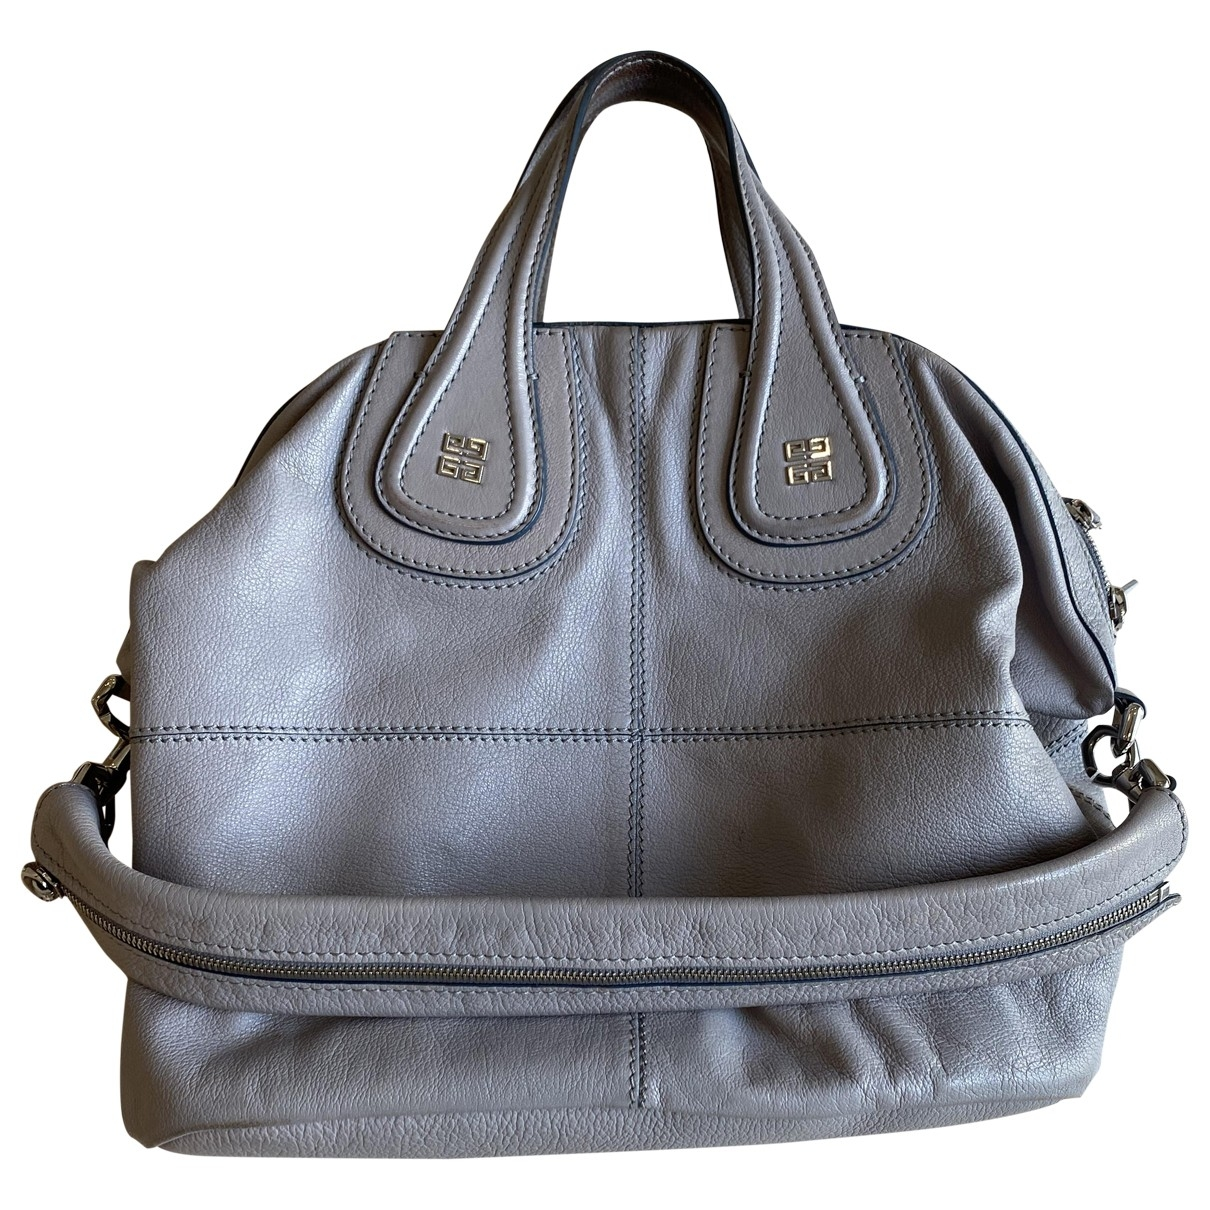 Givenchy Nightingale Handtasche in  Grau Leder